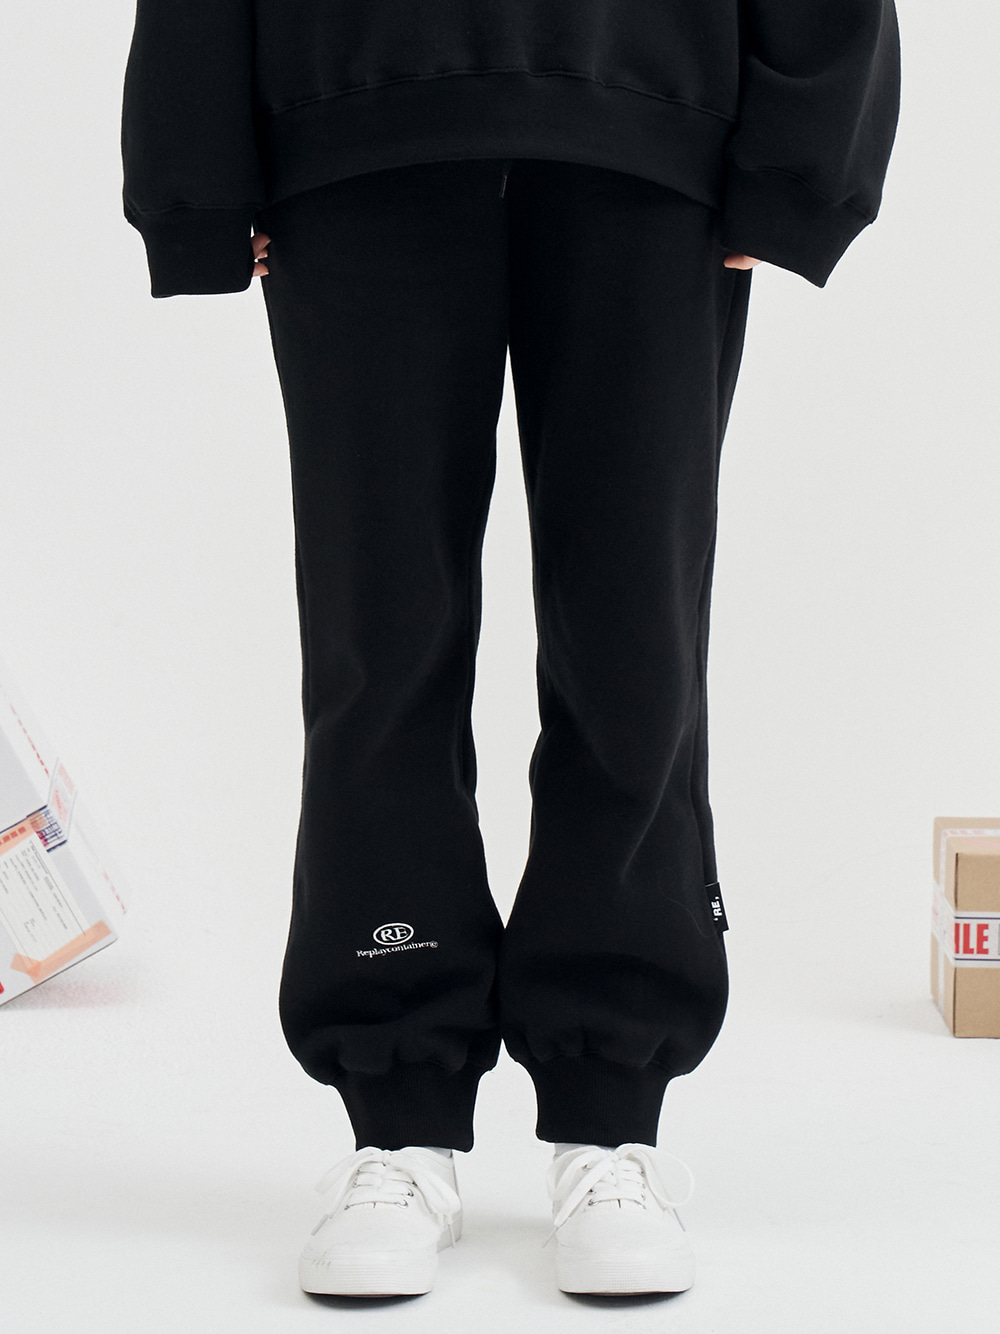 RE capsule logo jogger pants (back) [9/25 delivery]